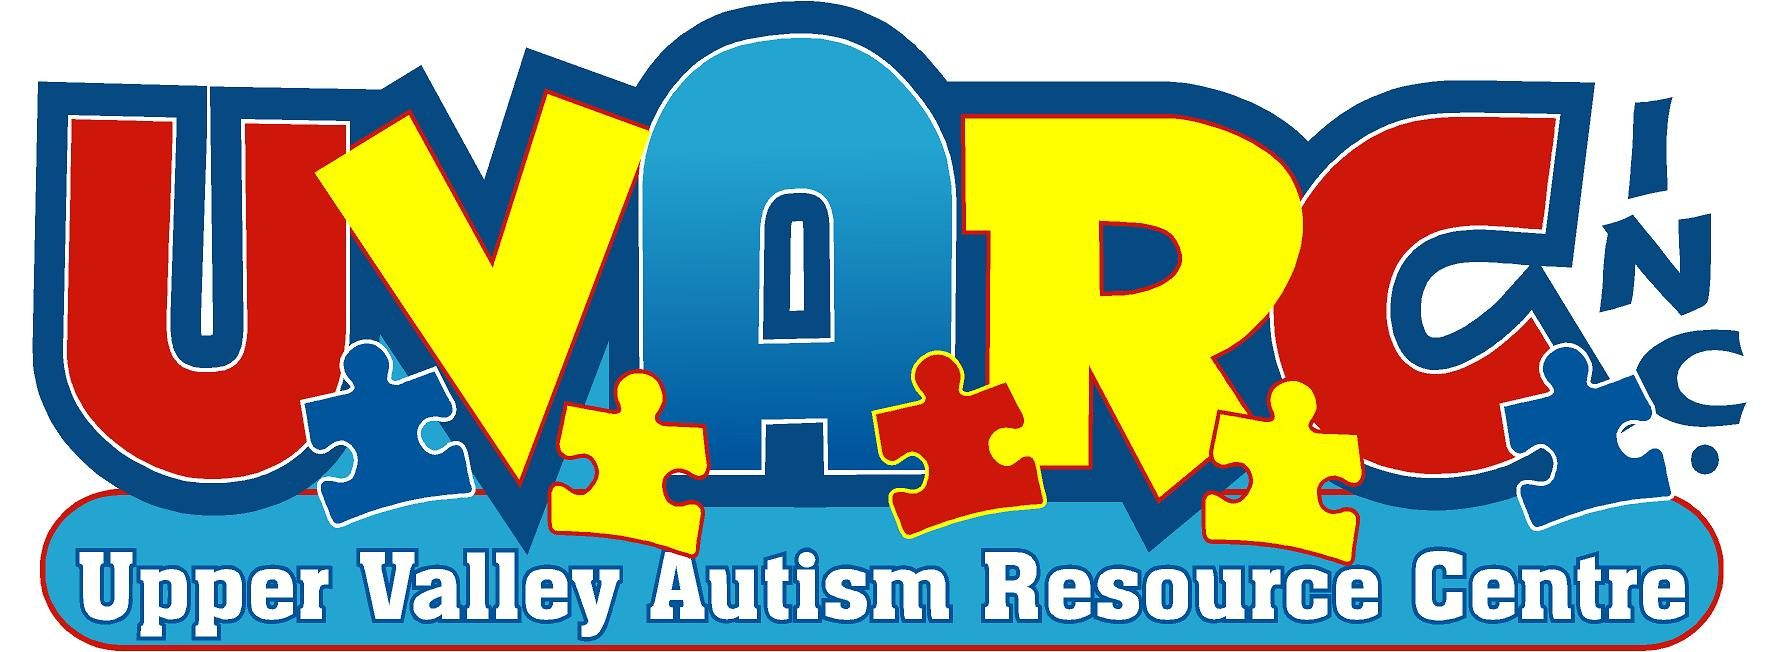 Upper Valley Autism Resource Centre Inc.